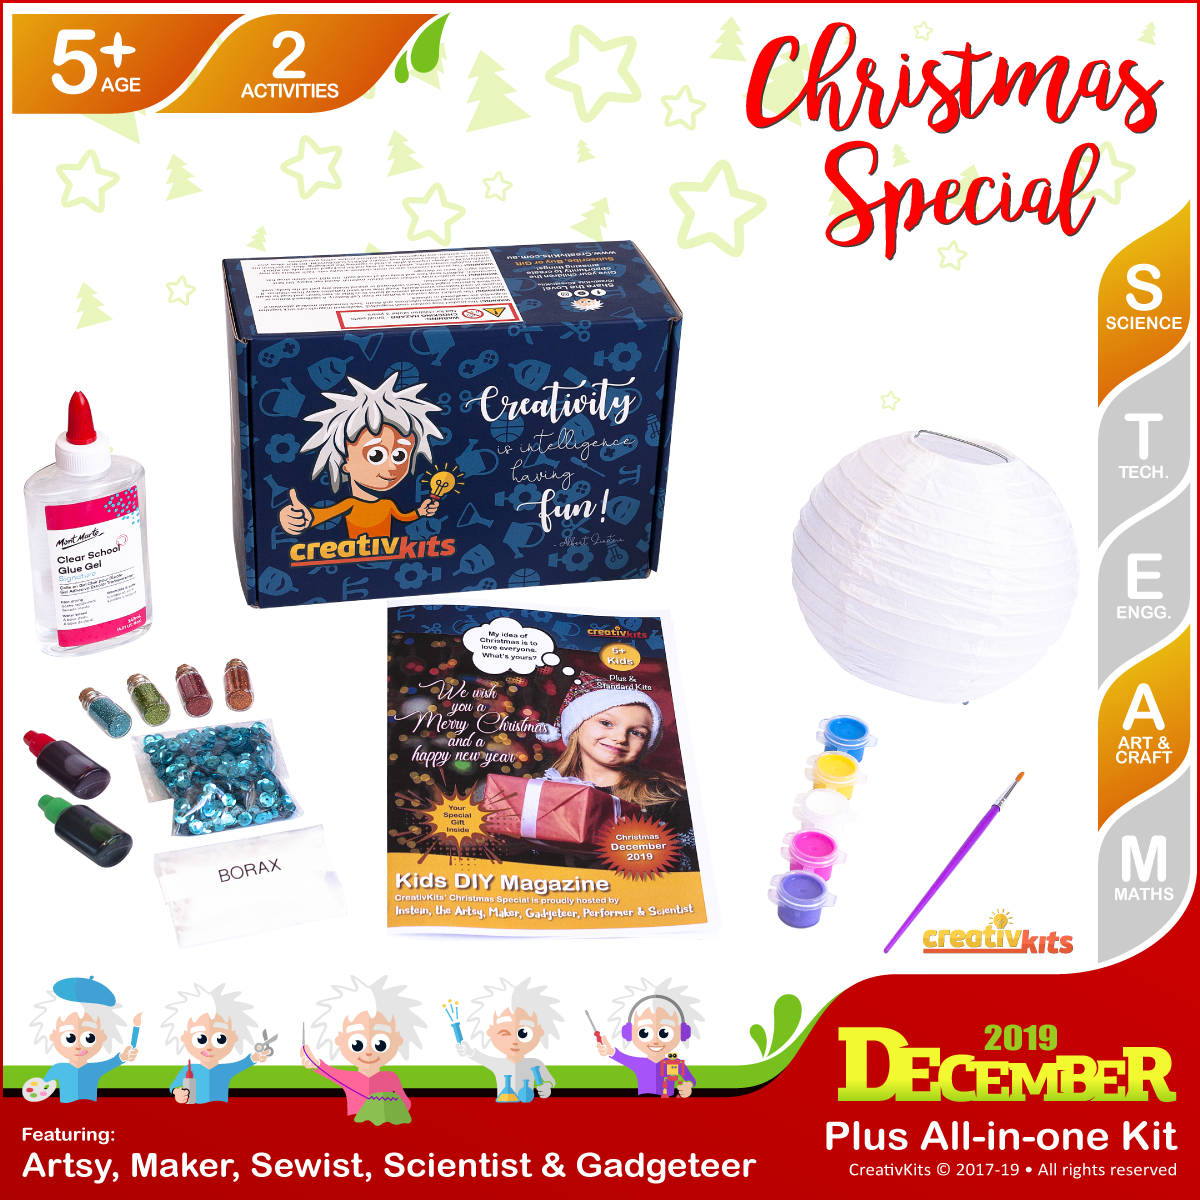 December Standard Combo Kit • Age 5 plus • Christmas Glitter Slime and Painted Xmas Lantern